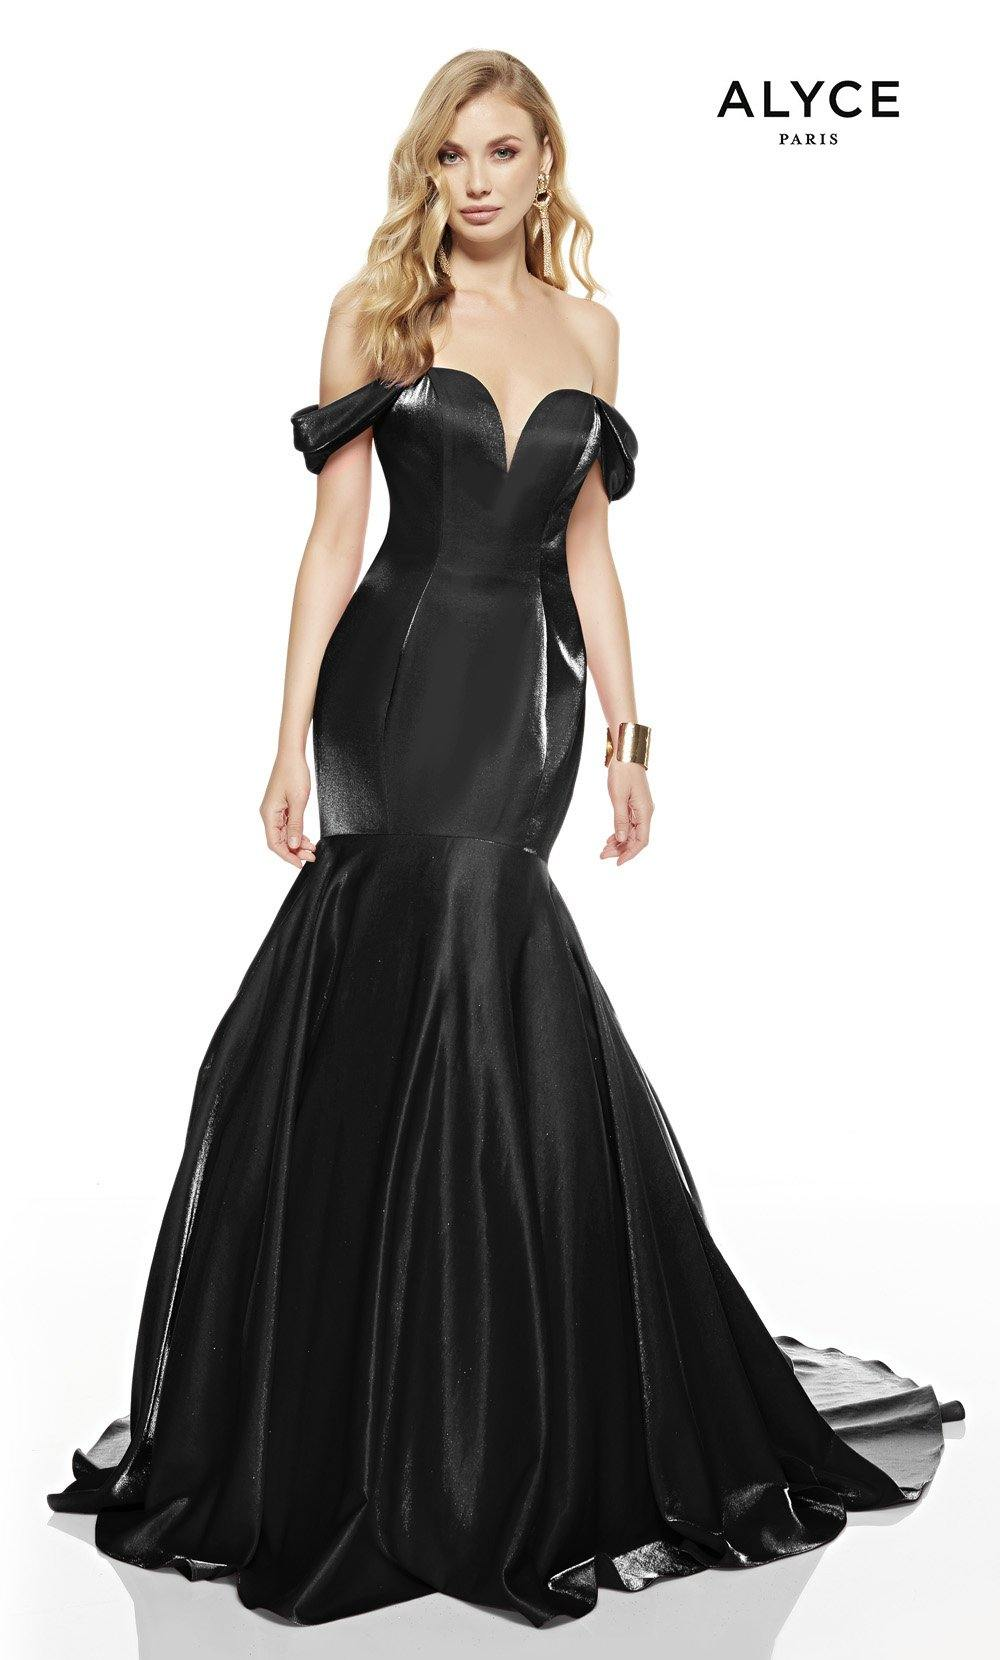 Black mermaid prom dress with an off shoulder neckline